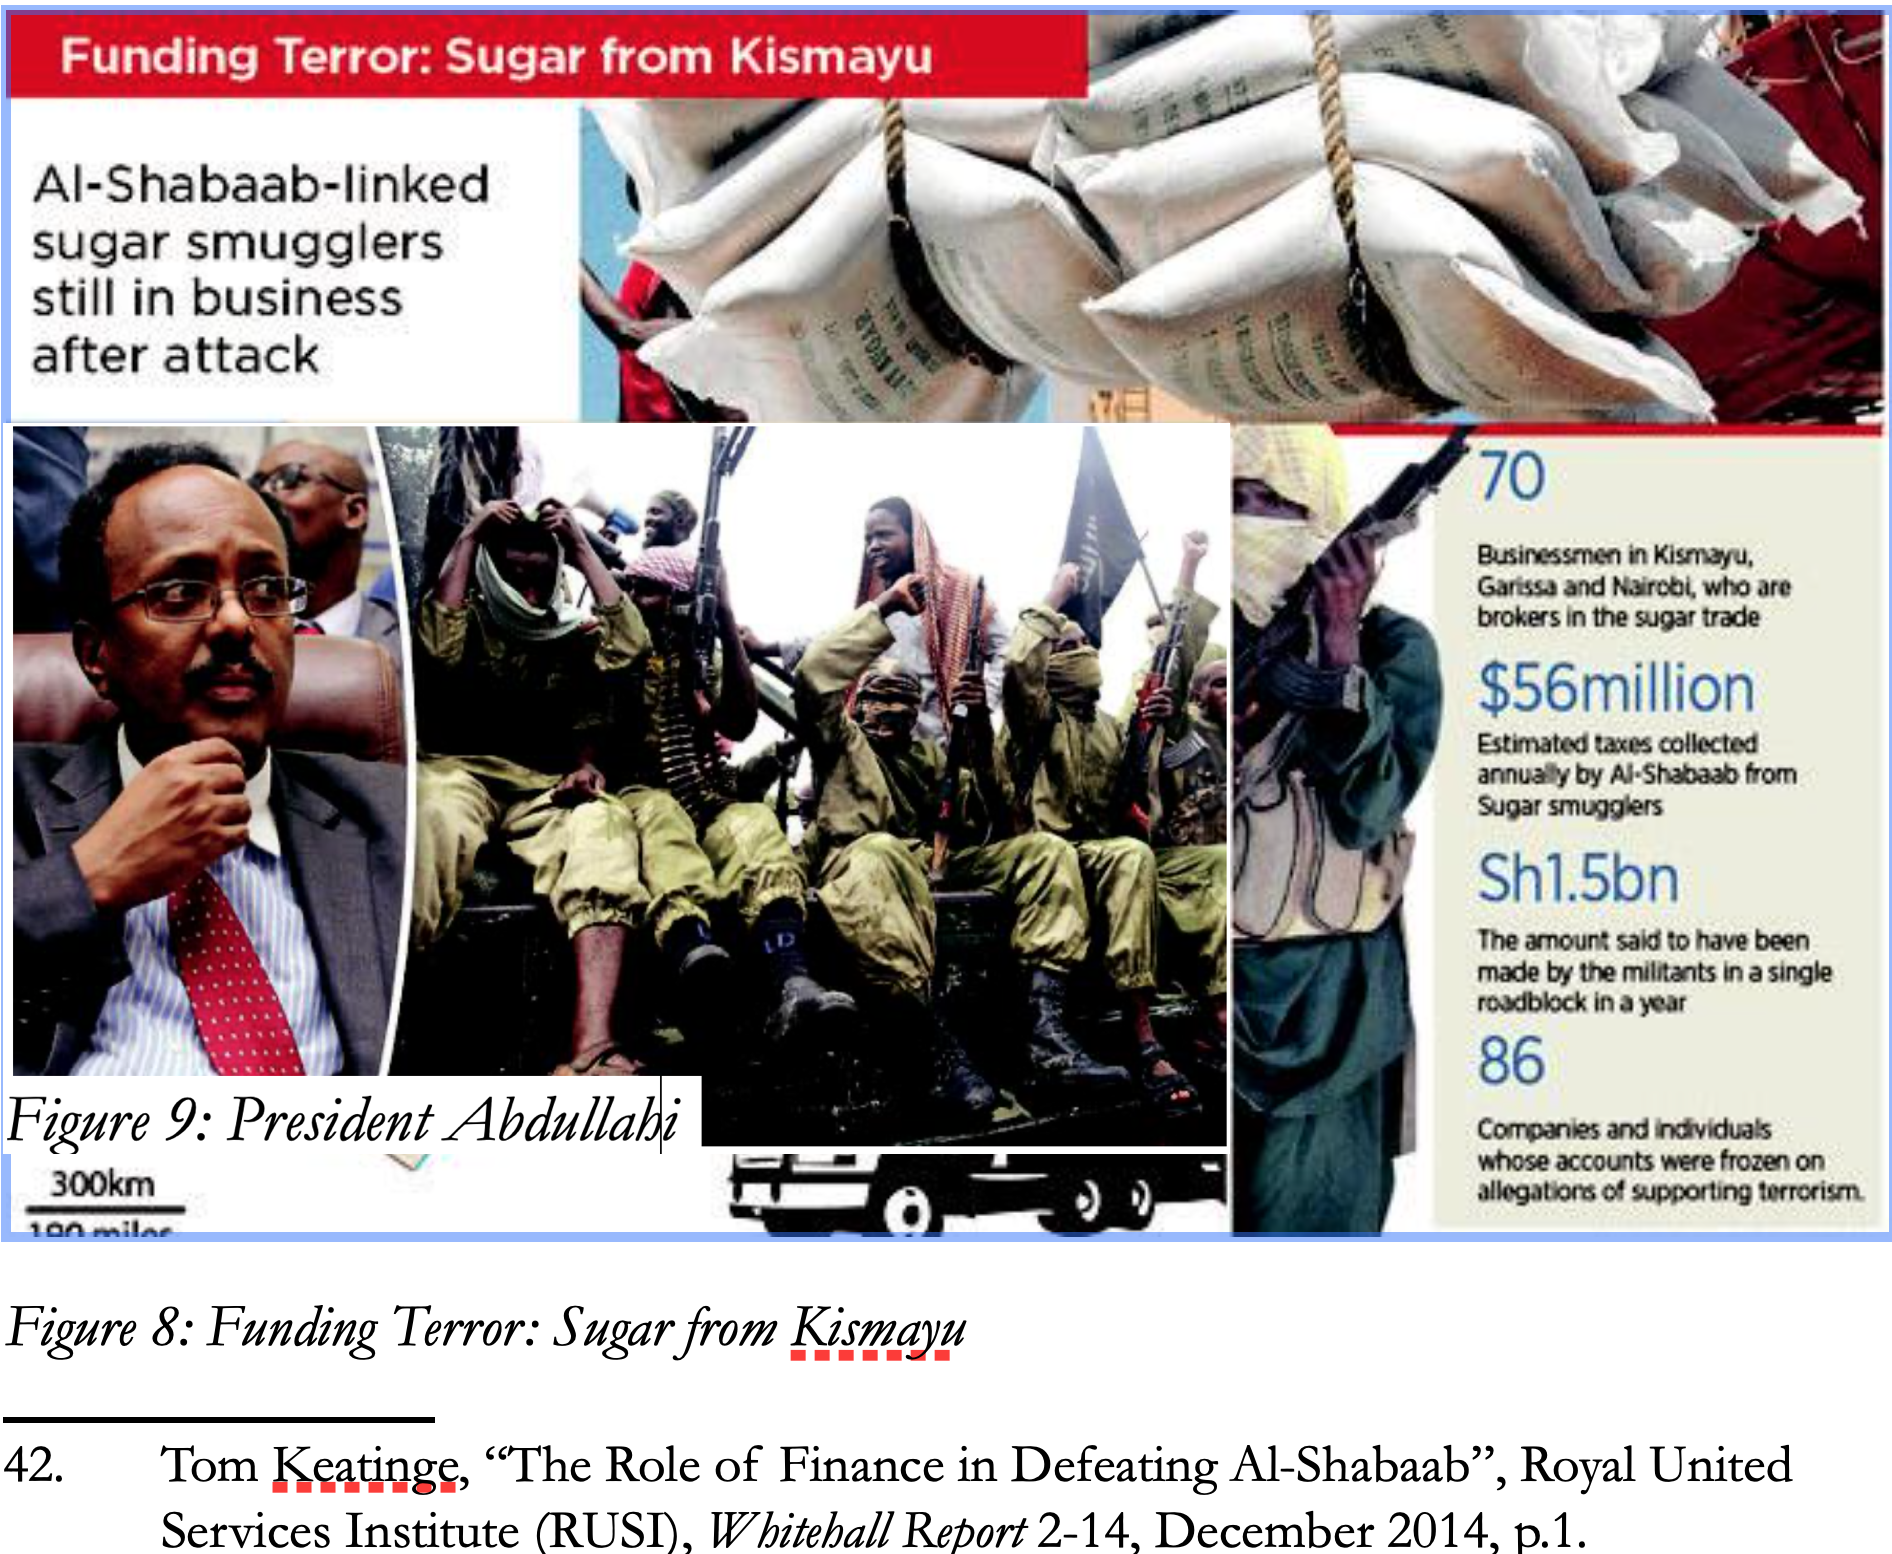 SOMALIA: Funding Terror: Sugar from Kismayo